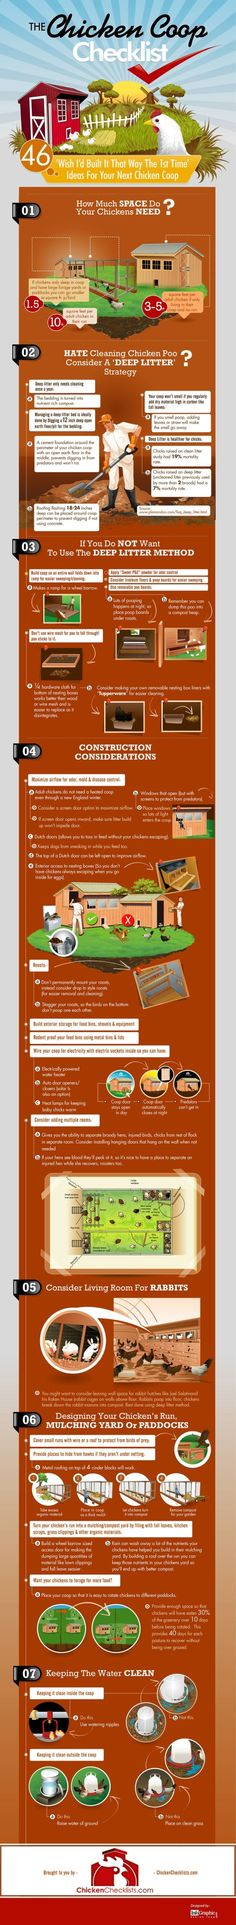 The Chicken Coop Checklist by esperanza  I friggen love this ... makes planning a lot simpler.